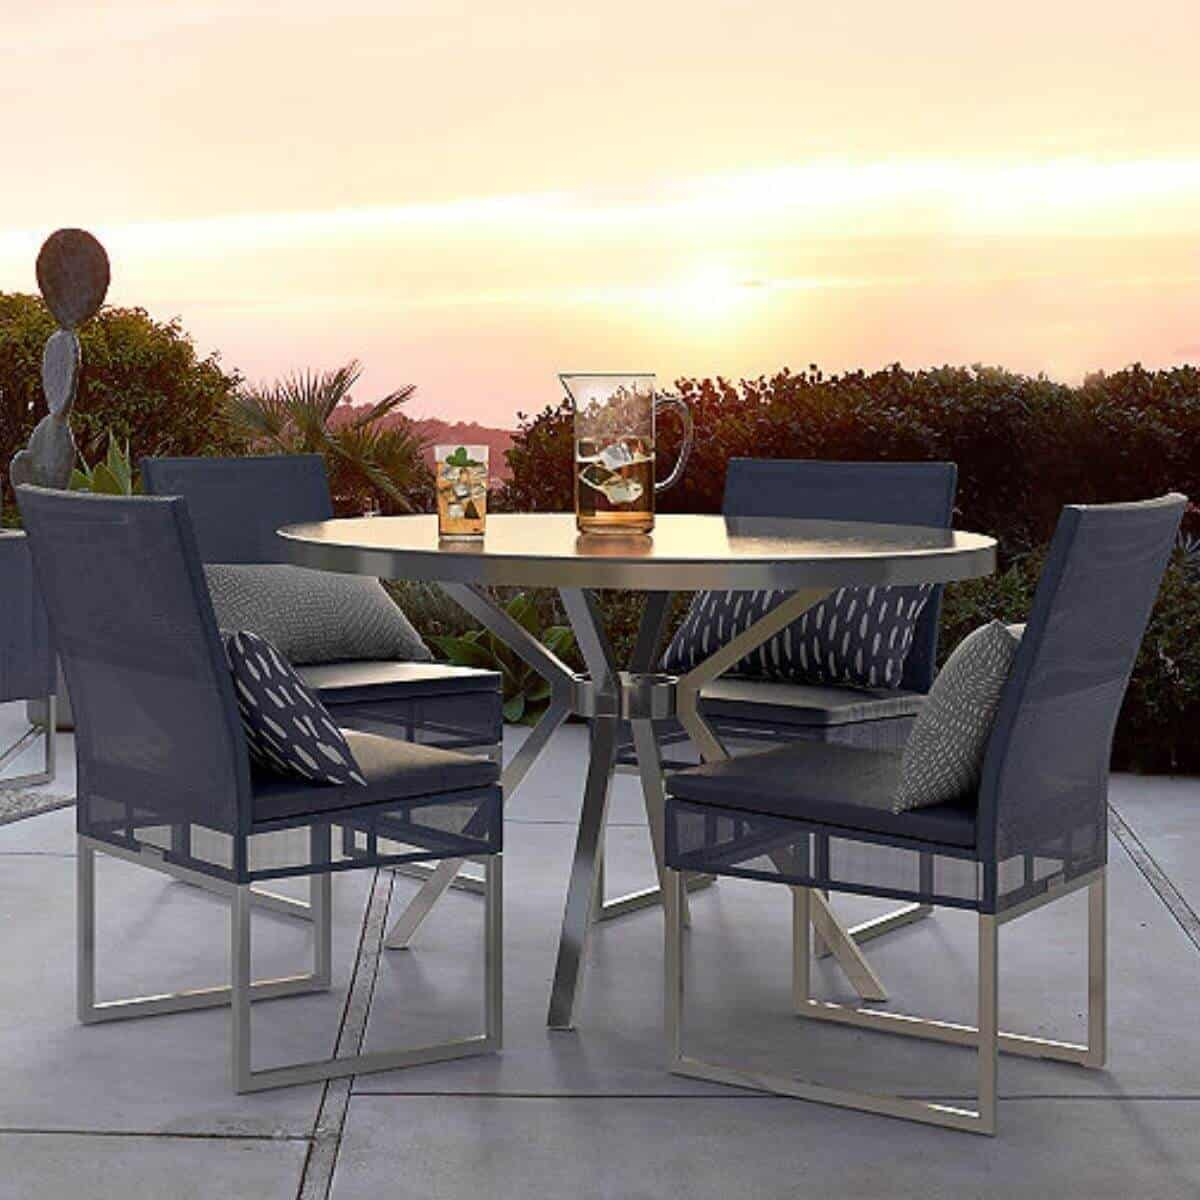 Outdoor dining table and chairs on a patio with a sunset.